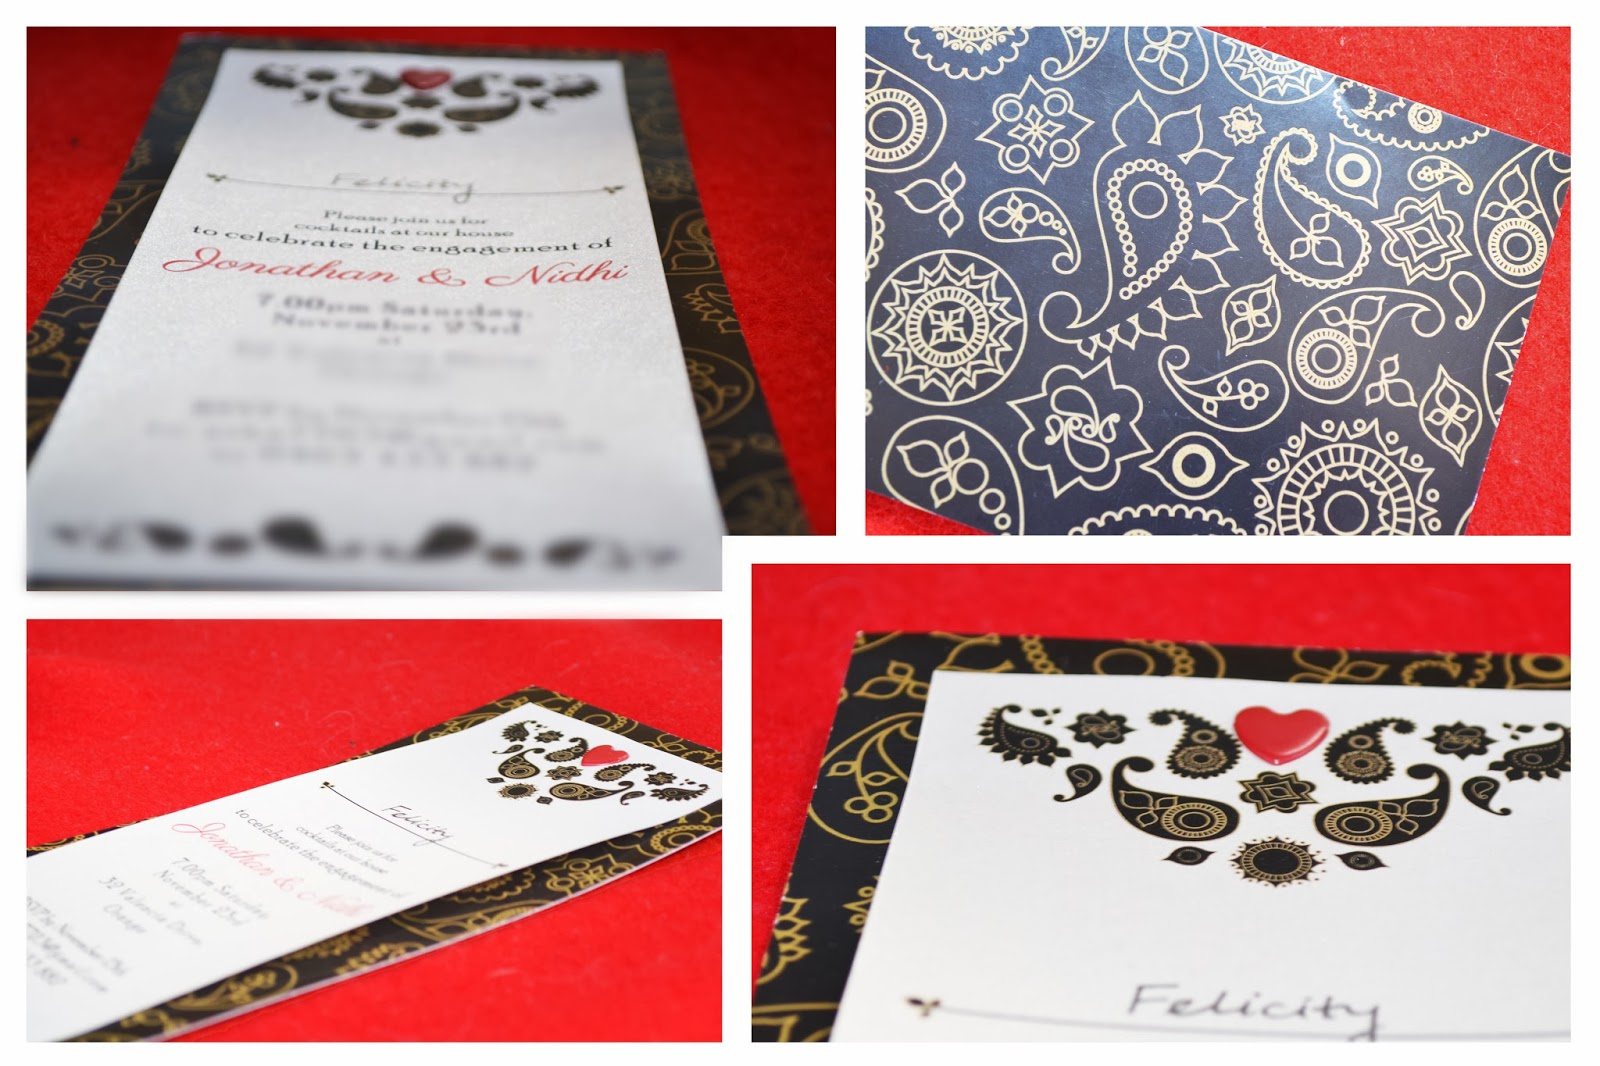 Felicity Cantrill - Graphic design: Personalised Stationery